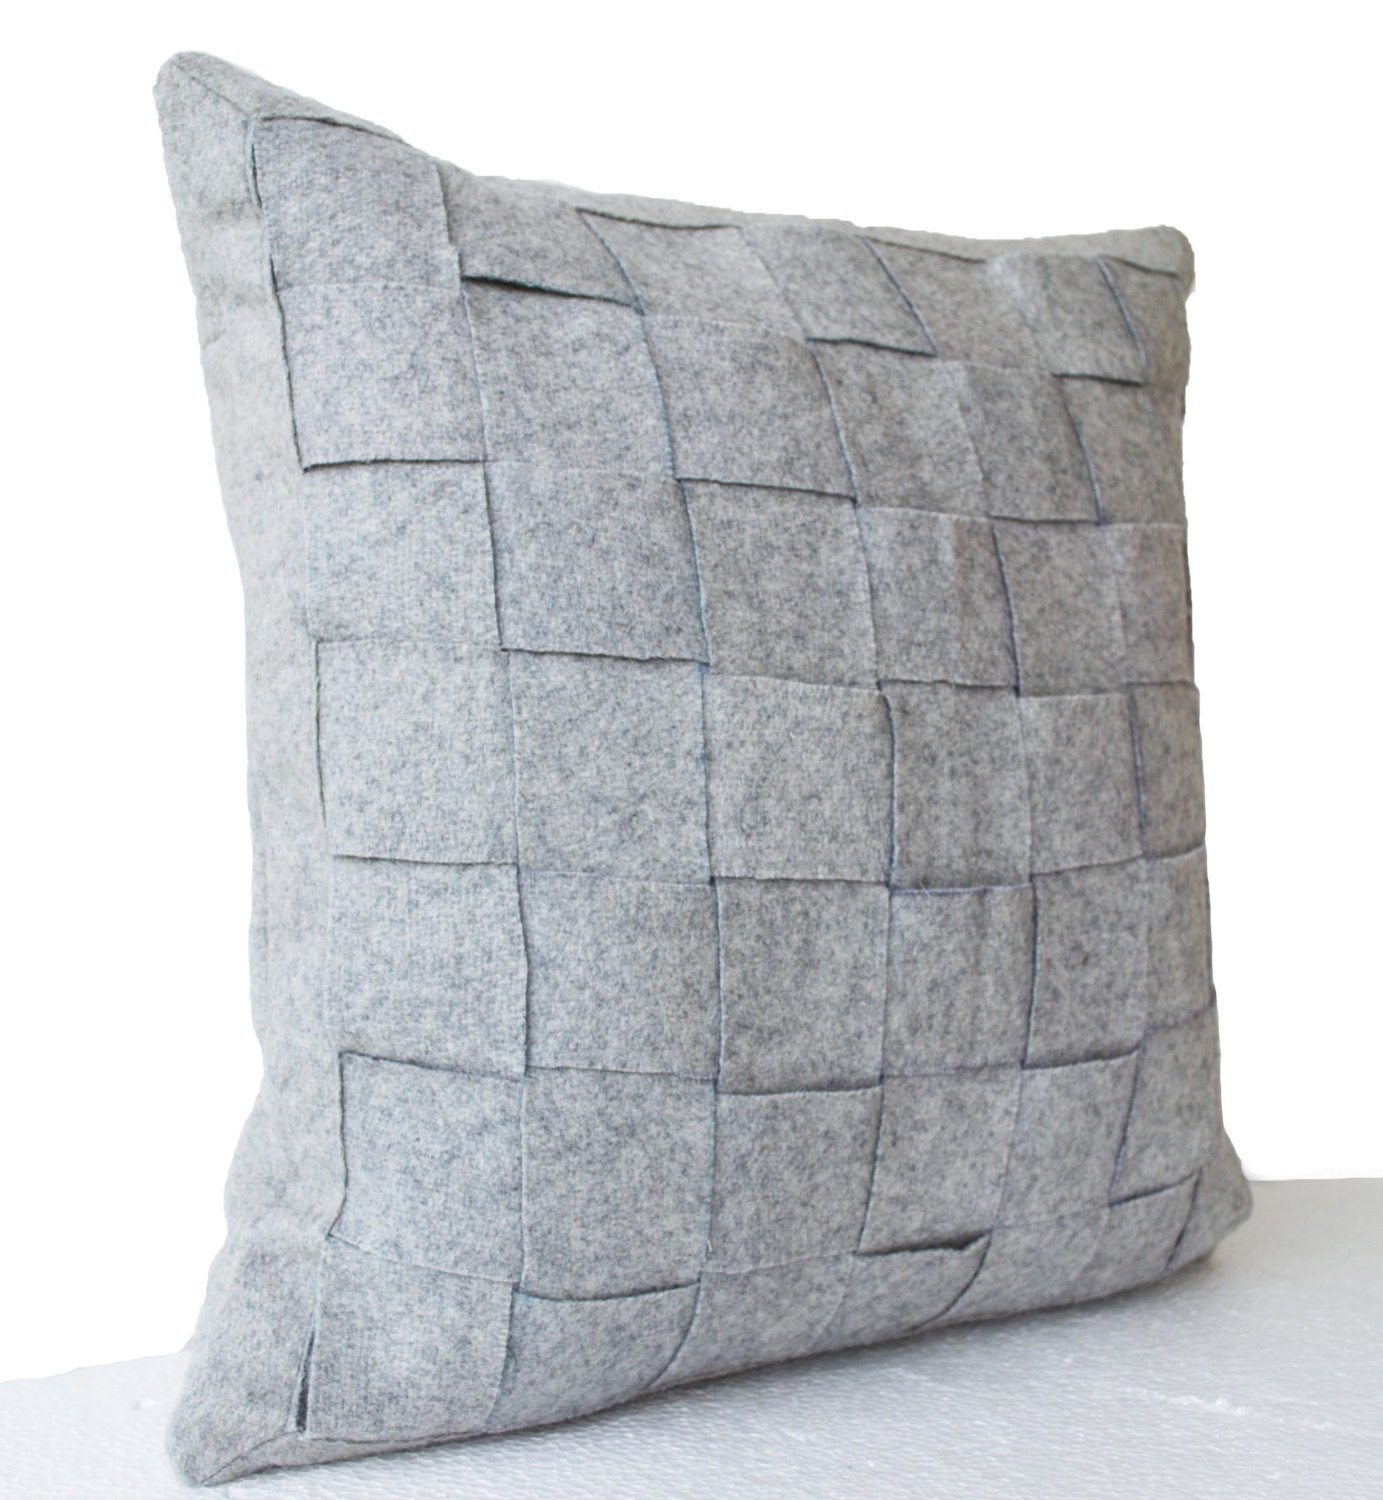 Gray Bed Throw Pillows : Gray felt pillowcases weave throw pillow decorative